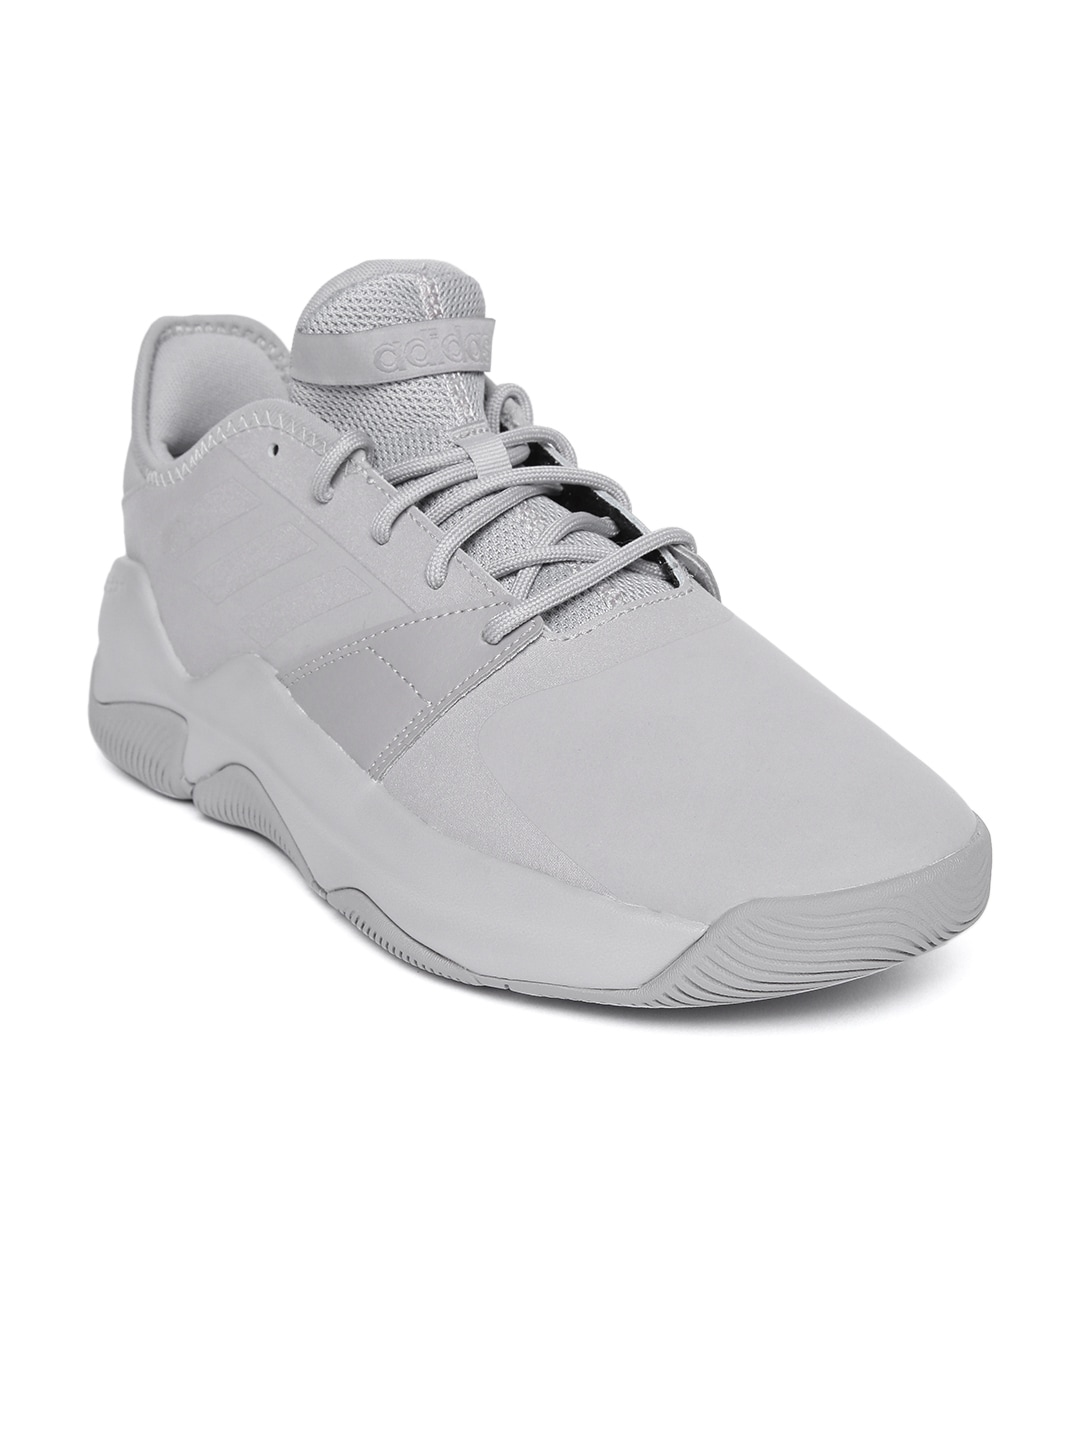 31fe78bce20a Basket Ball Shoes - Buy Basket Ball Shoes Online